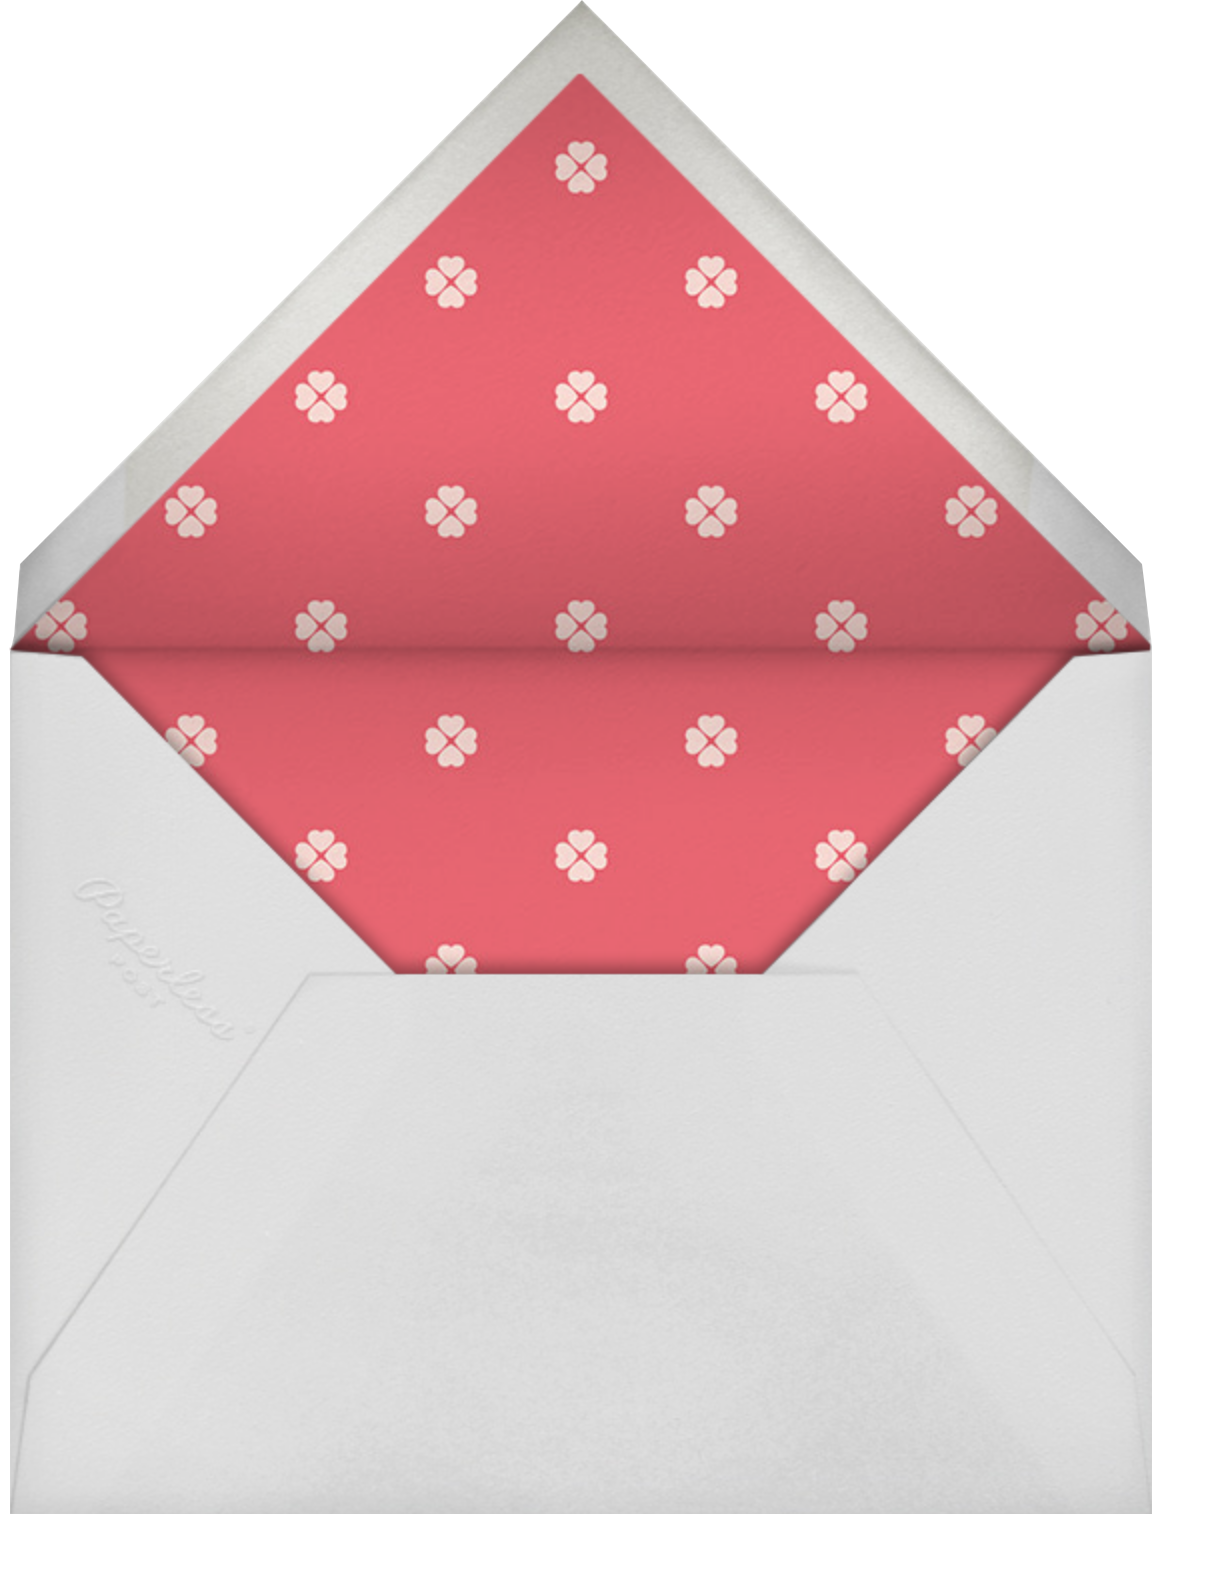 Colorblocked Stripes - Pink - kate spade new york - Save the date - envelope back